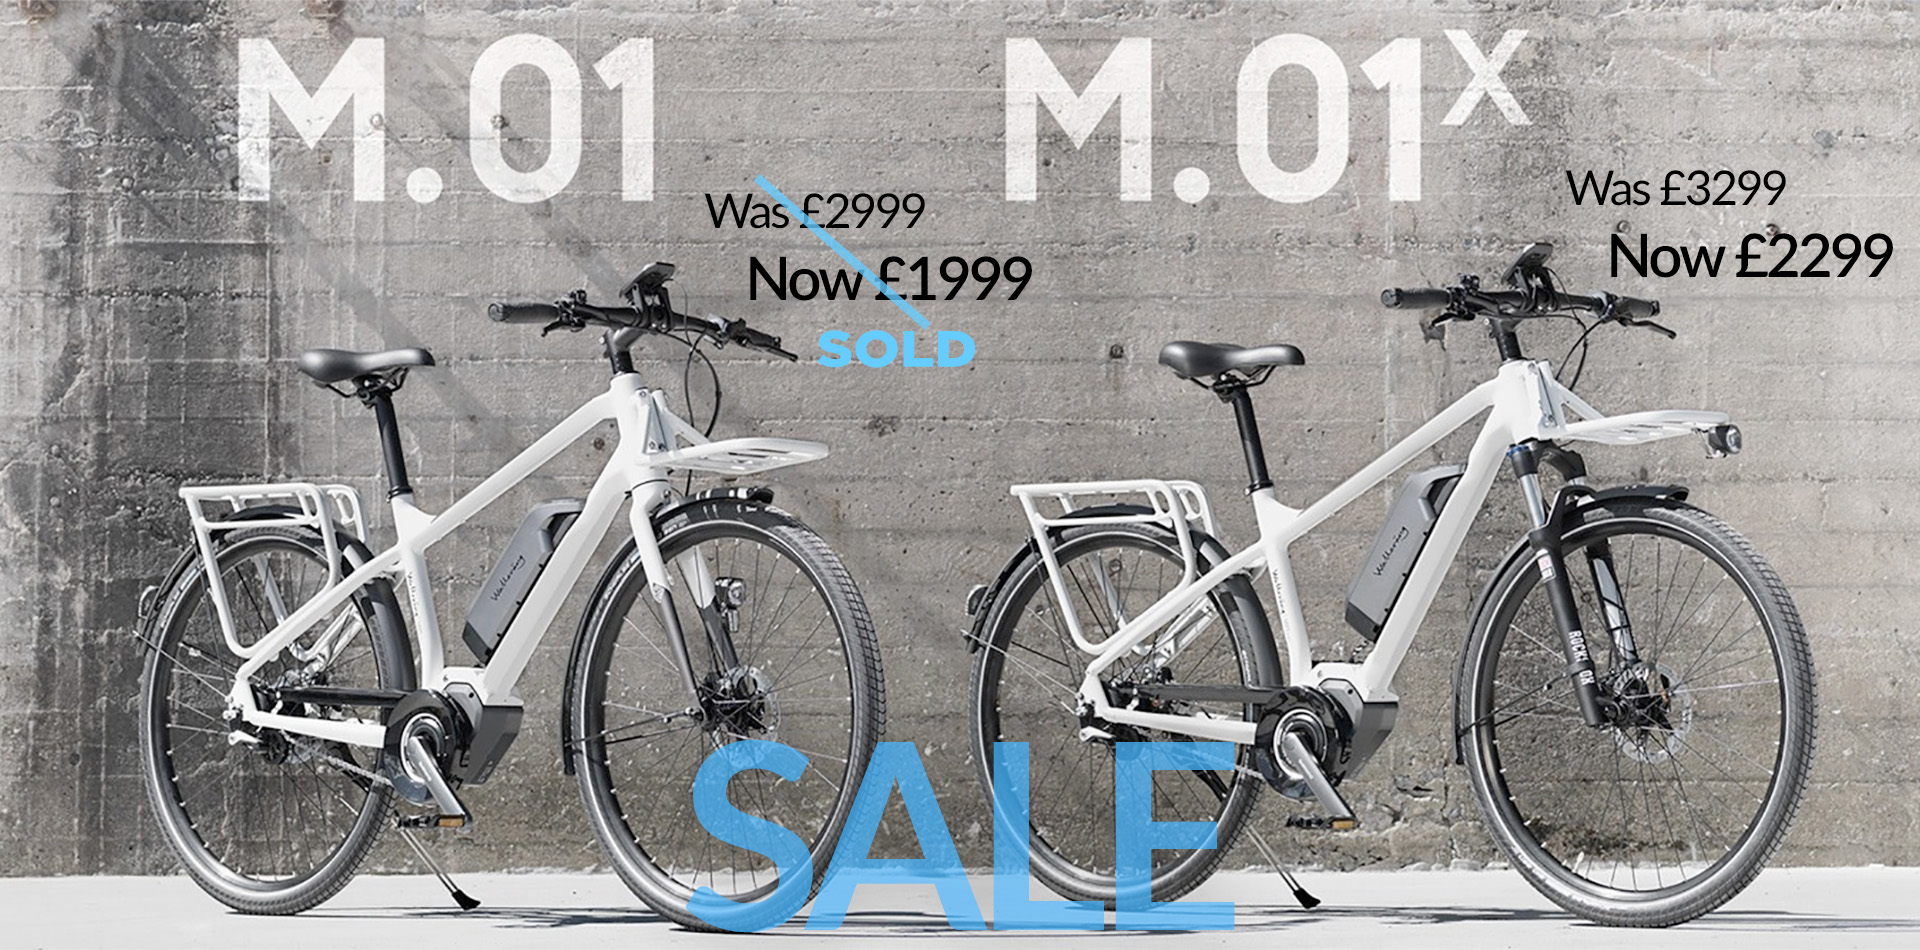 https://electric-bike-store.co.uk/wp-content/uploads/2018/03/wallerang-flash-sale.jpg